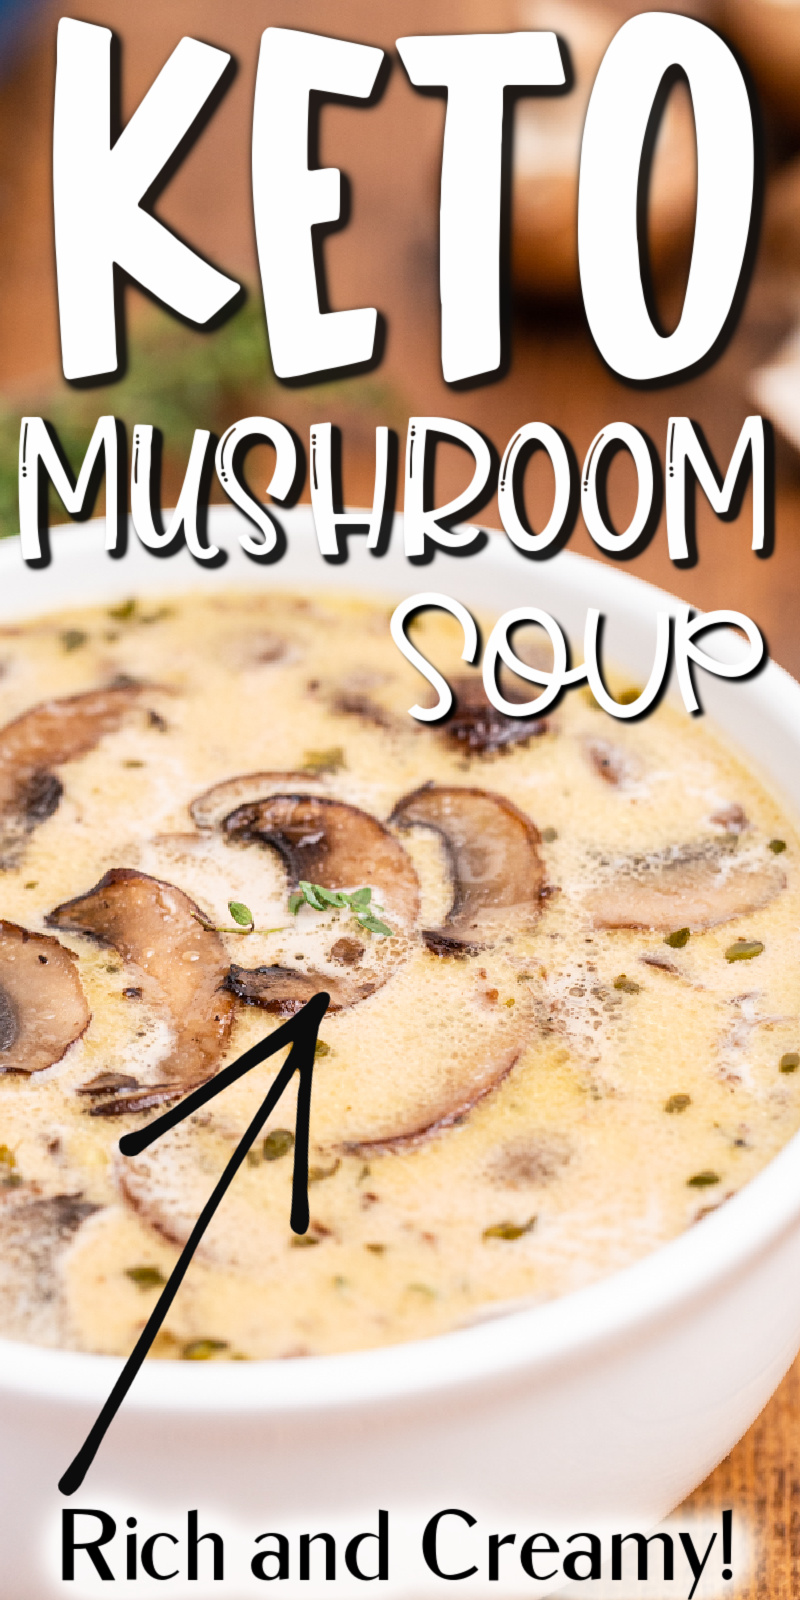 Keto Cream of Mushroom Soup - This keto cream of mushroom soup recipe is made with lots of mushrooms, thyme, and my secret weapon - port wine, for a deliciously rich flavor you can't beat! It is so easy to make and it's a perfect keto soup recipe for chilly days. #keto #lowcarb #glutenfree #mushroom #soup #recipe